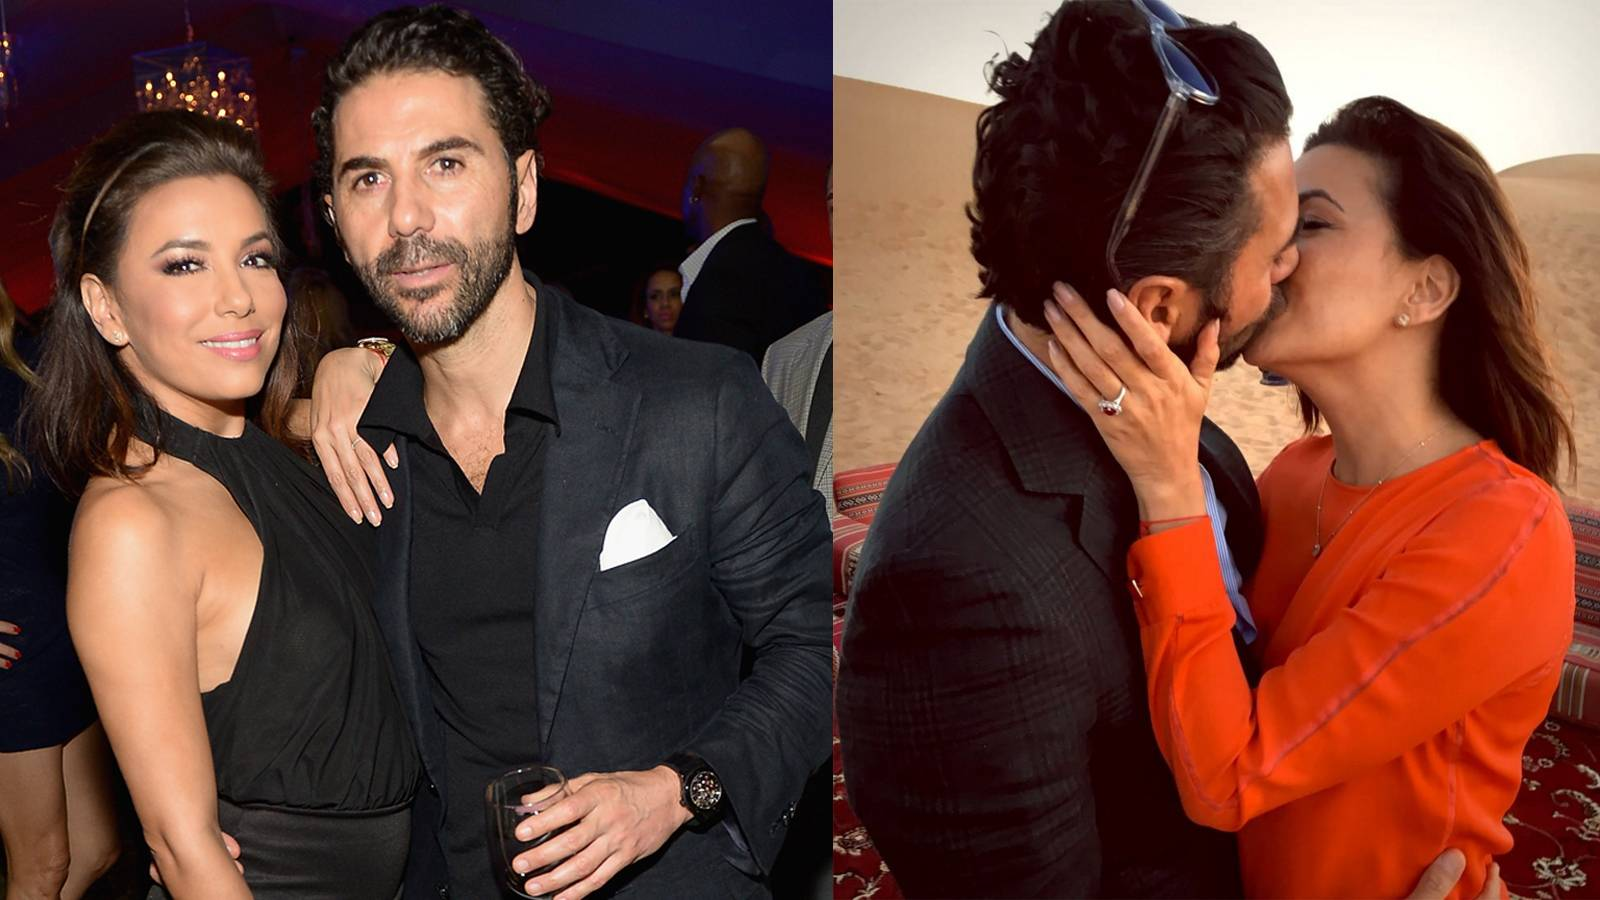 """Eva Longoria - This actress is heading back down the aisle! She shared the news on December 12 that her beau, Jose Antonio Baston, had proposed in Dubai. She wrote on Instagram, """"Ummmm so this happened….#Engaged #Dubai #Happiness."""" Her new hardware appears to be an impressive ruby set off with clusters of smaller white diamonds. Very original, indeed!  (Photos from left: Gustavo Caballero/Getty Images for Haute Living, Eva Longoria via Instagram)"""